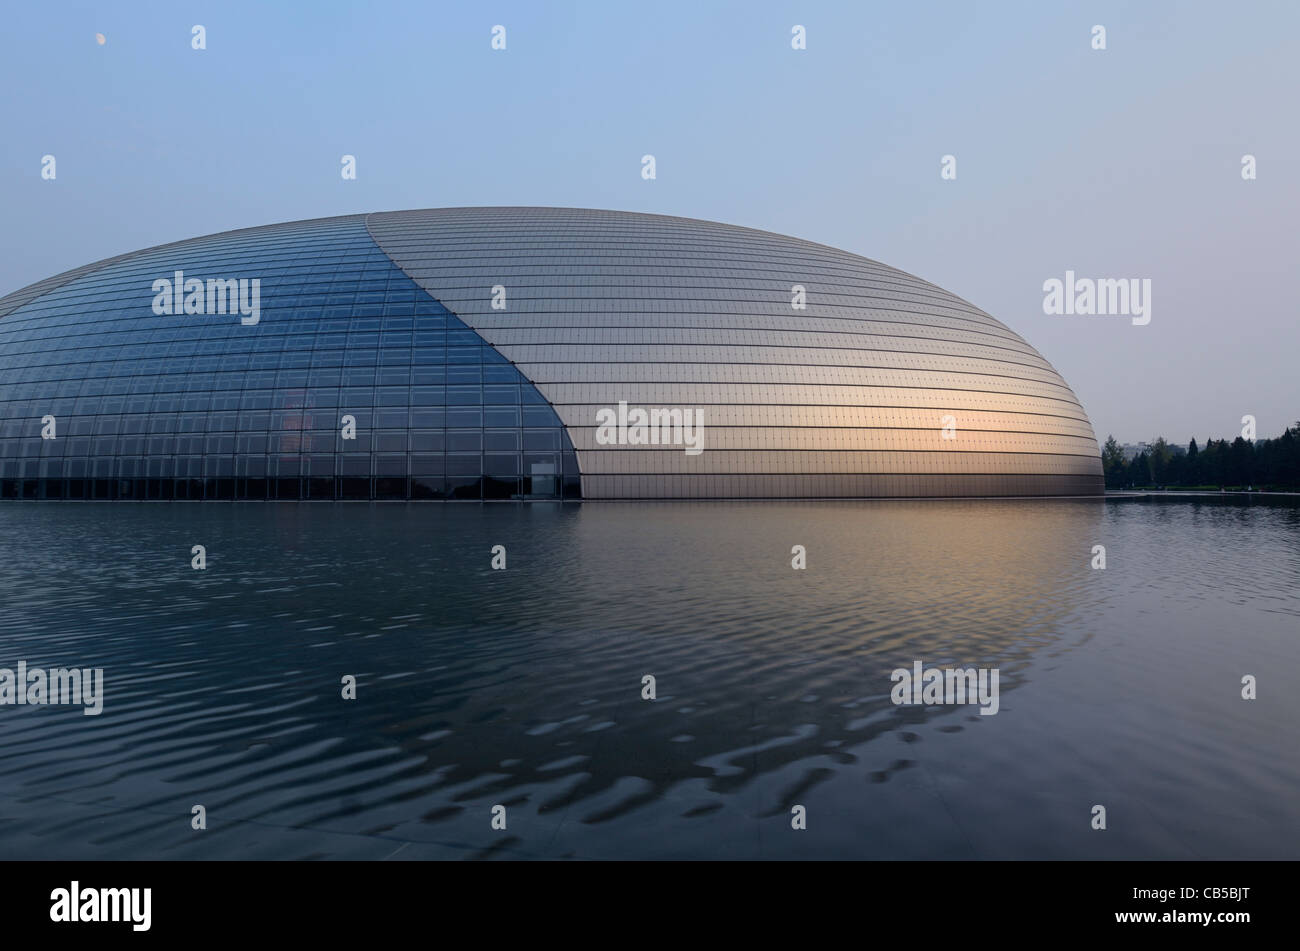 National Centre for the Performing Arts at dusk with moon in Beijing Peoples Republic of China - Stock Image